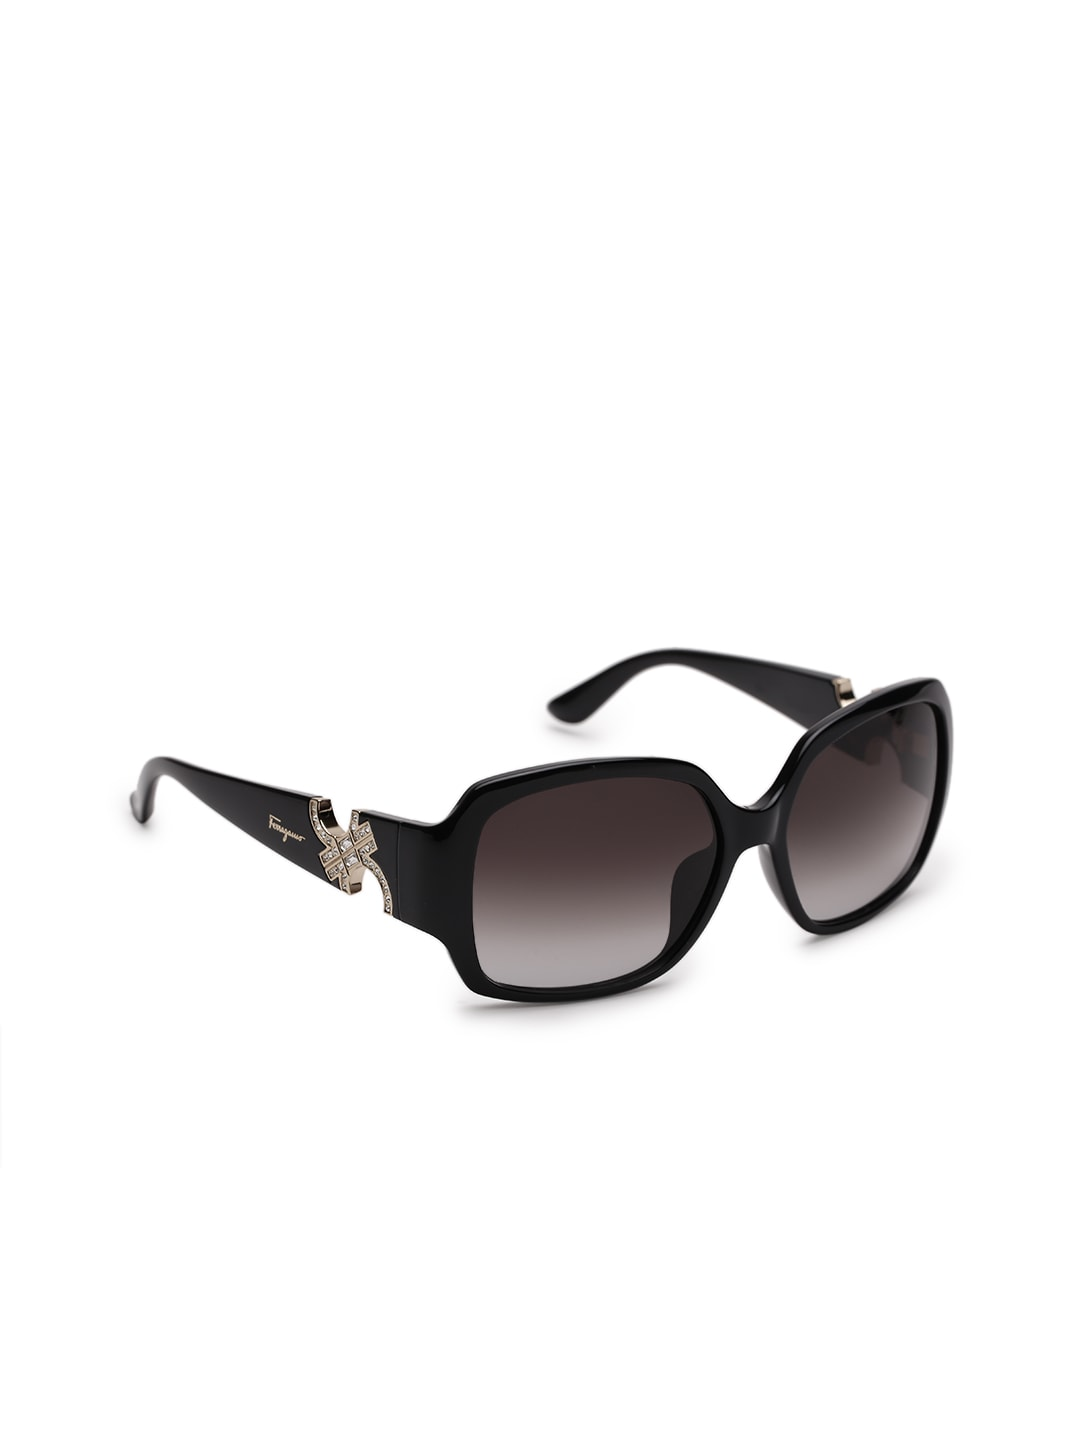 Salvatore Ferragamo Women Square Sunglasses SF642SR 001